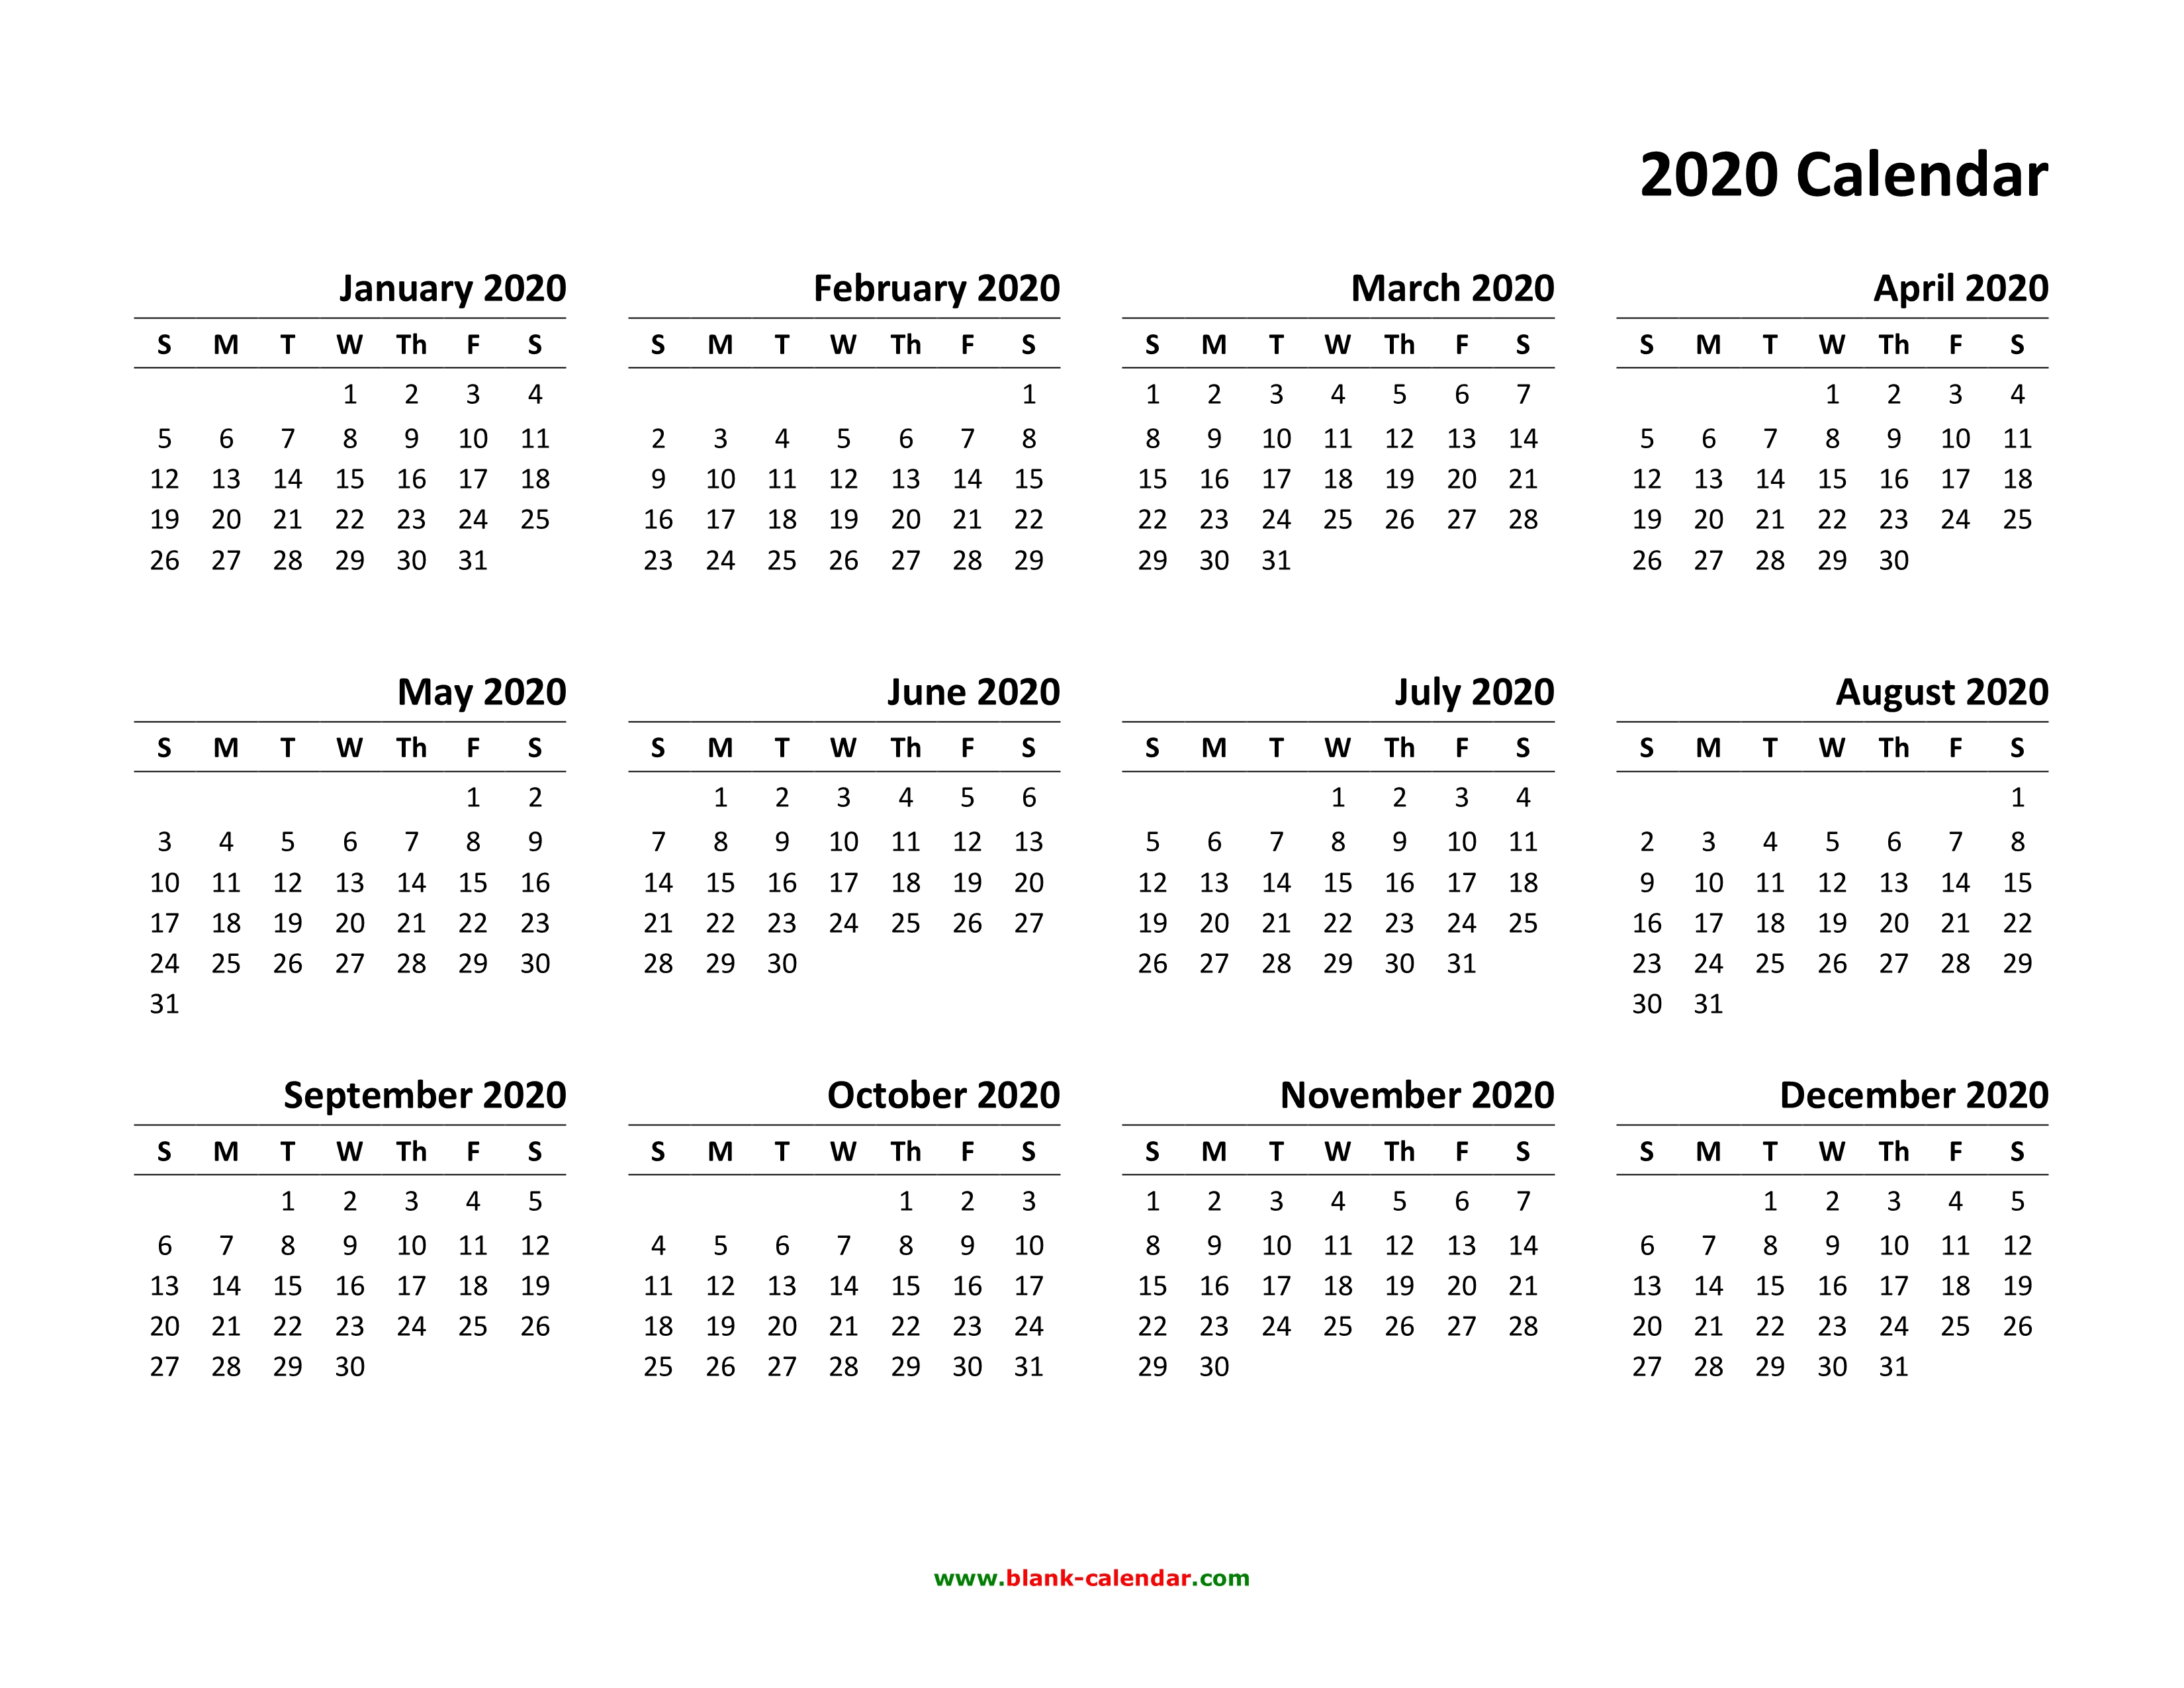 Yearly Calendar 2020 | Free Download And Print with 2020 Calendar Printable Free With Added Oicture